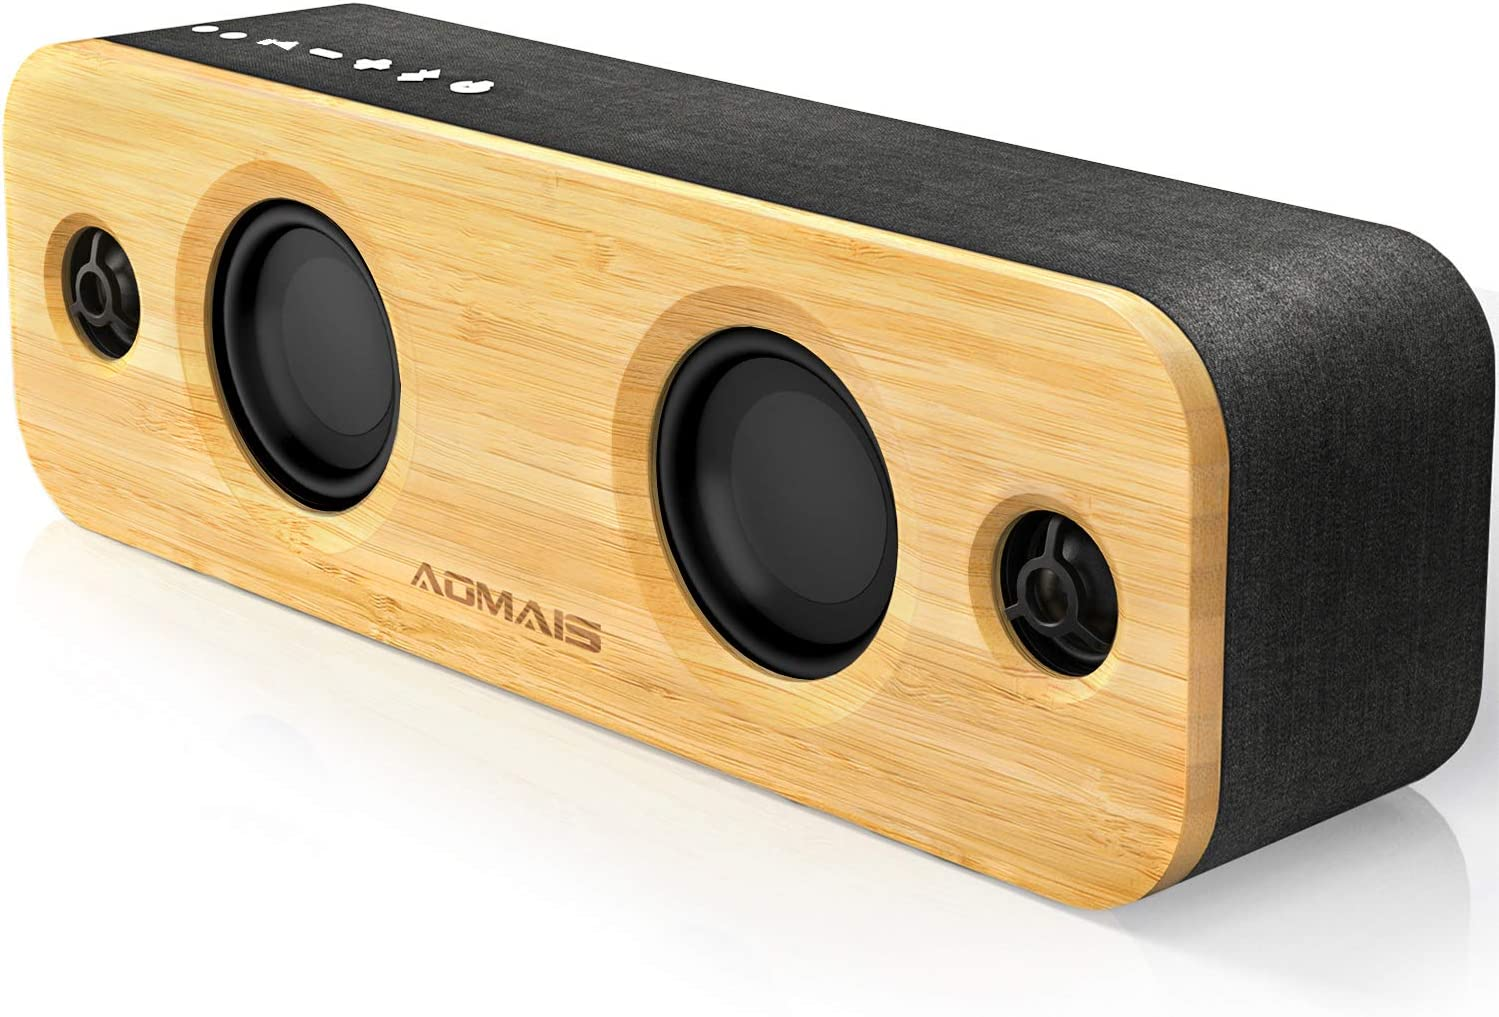 AOMAIS Life Bluetooth Speakers, 30W Loud Home Party Wireless Speaker, 2 Woofer & 2 Tweeters for Super Bass Stereo Sound, 100 Ft Bluetooth V5.0 and 12-Hour Playtime Subwoofer - Imitation Bamboo Panel